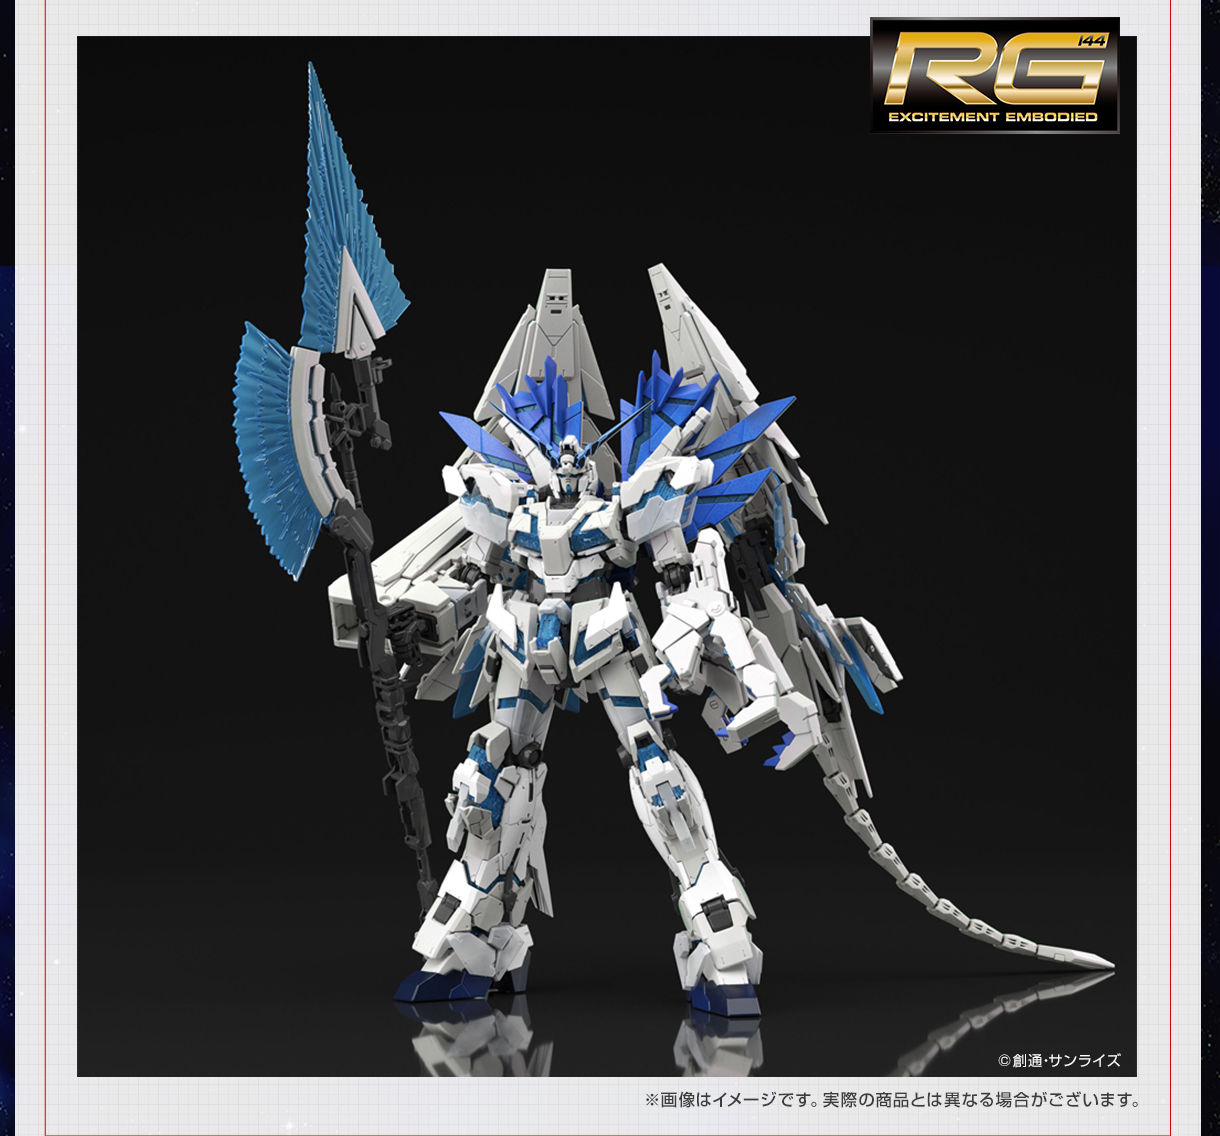 The Latest Gundam Unicorn Blu-Ray Box will Come With RG 1/144 Unicorn Gundam Perfectibility Form - Gundam Kits Collection News and Reviews